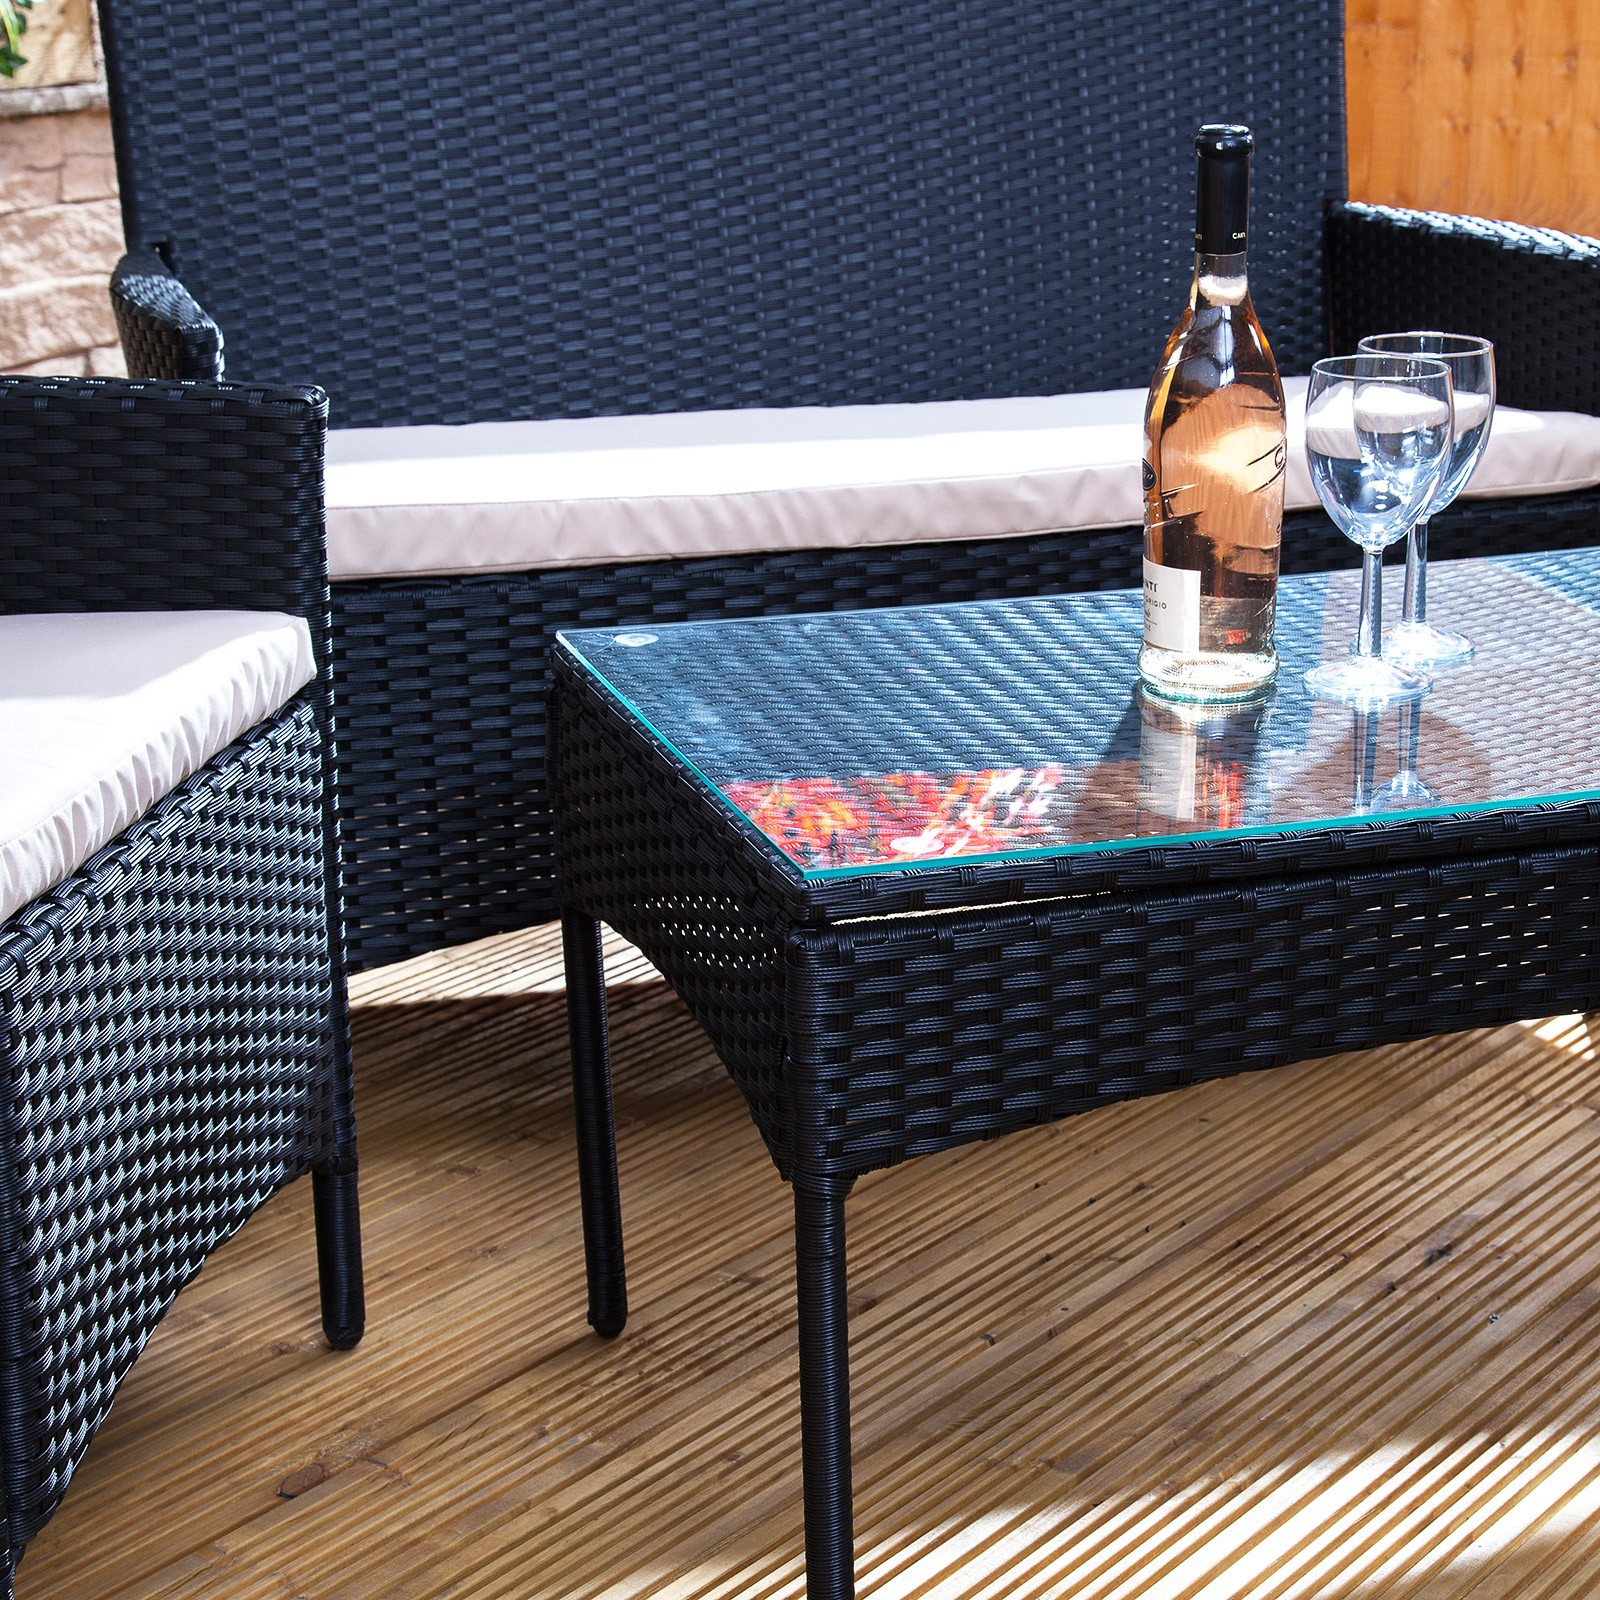 Garden furniture made of poly rattan bordeaux poly-rattan garden furniture set PQCZKUP